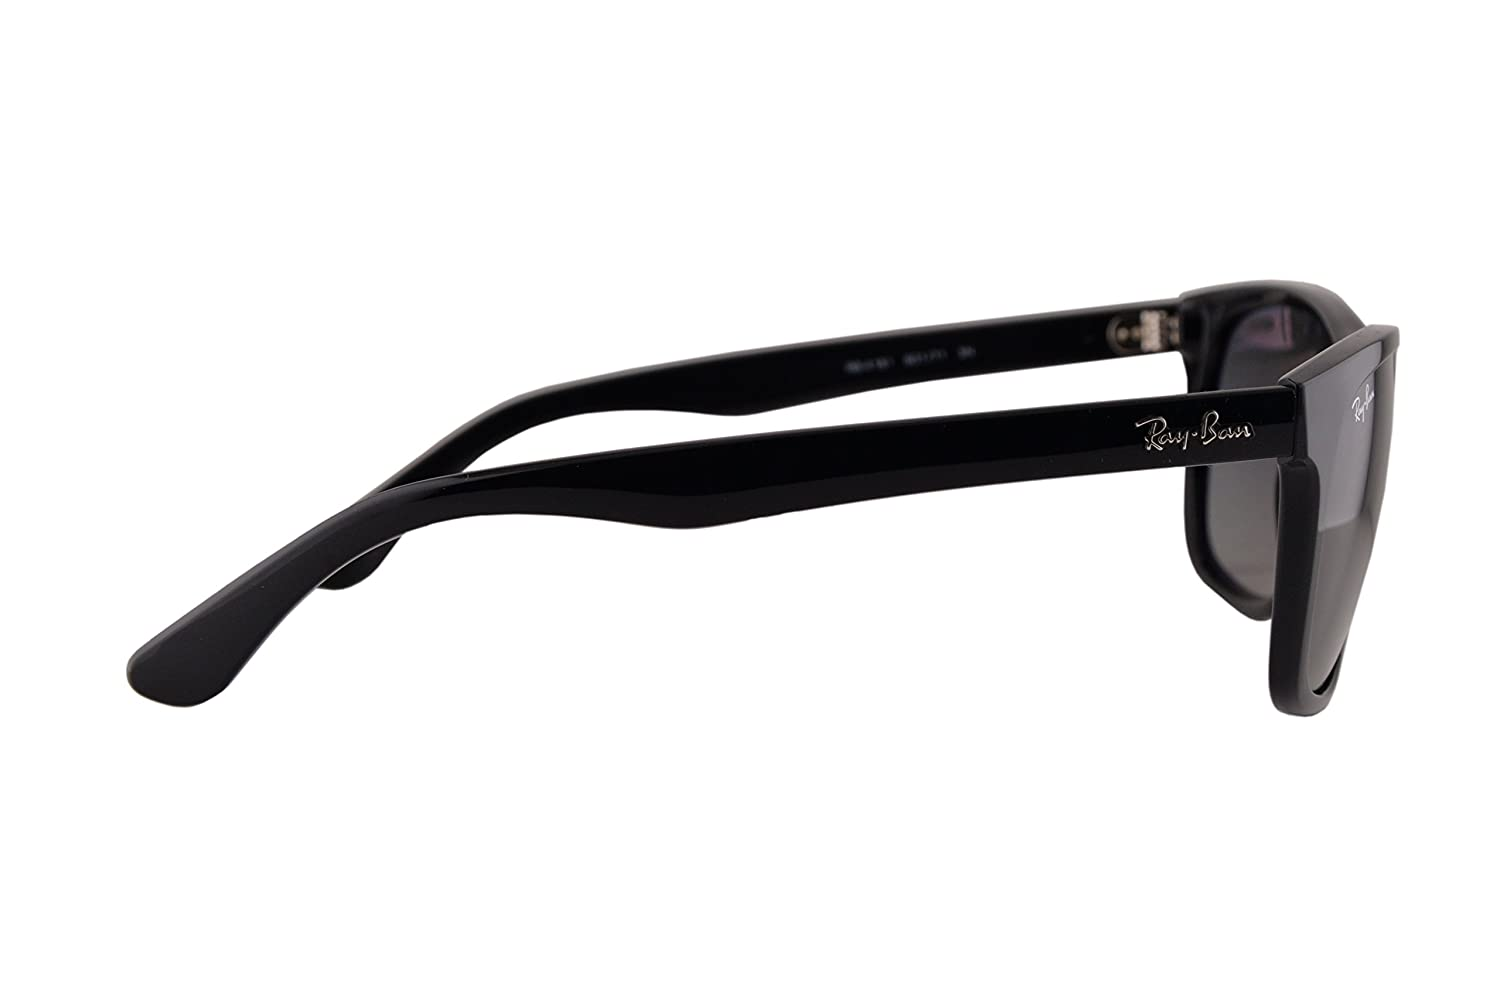 88da543e5f Ray Ban RB4181 Sunglasses Black w Crystal Grey Gradient Azure Lens 60171 RB  4181  Amazon.co.uk  Clothing